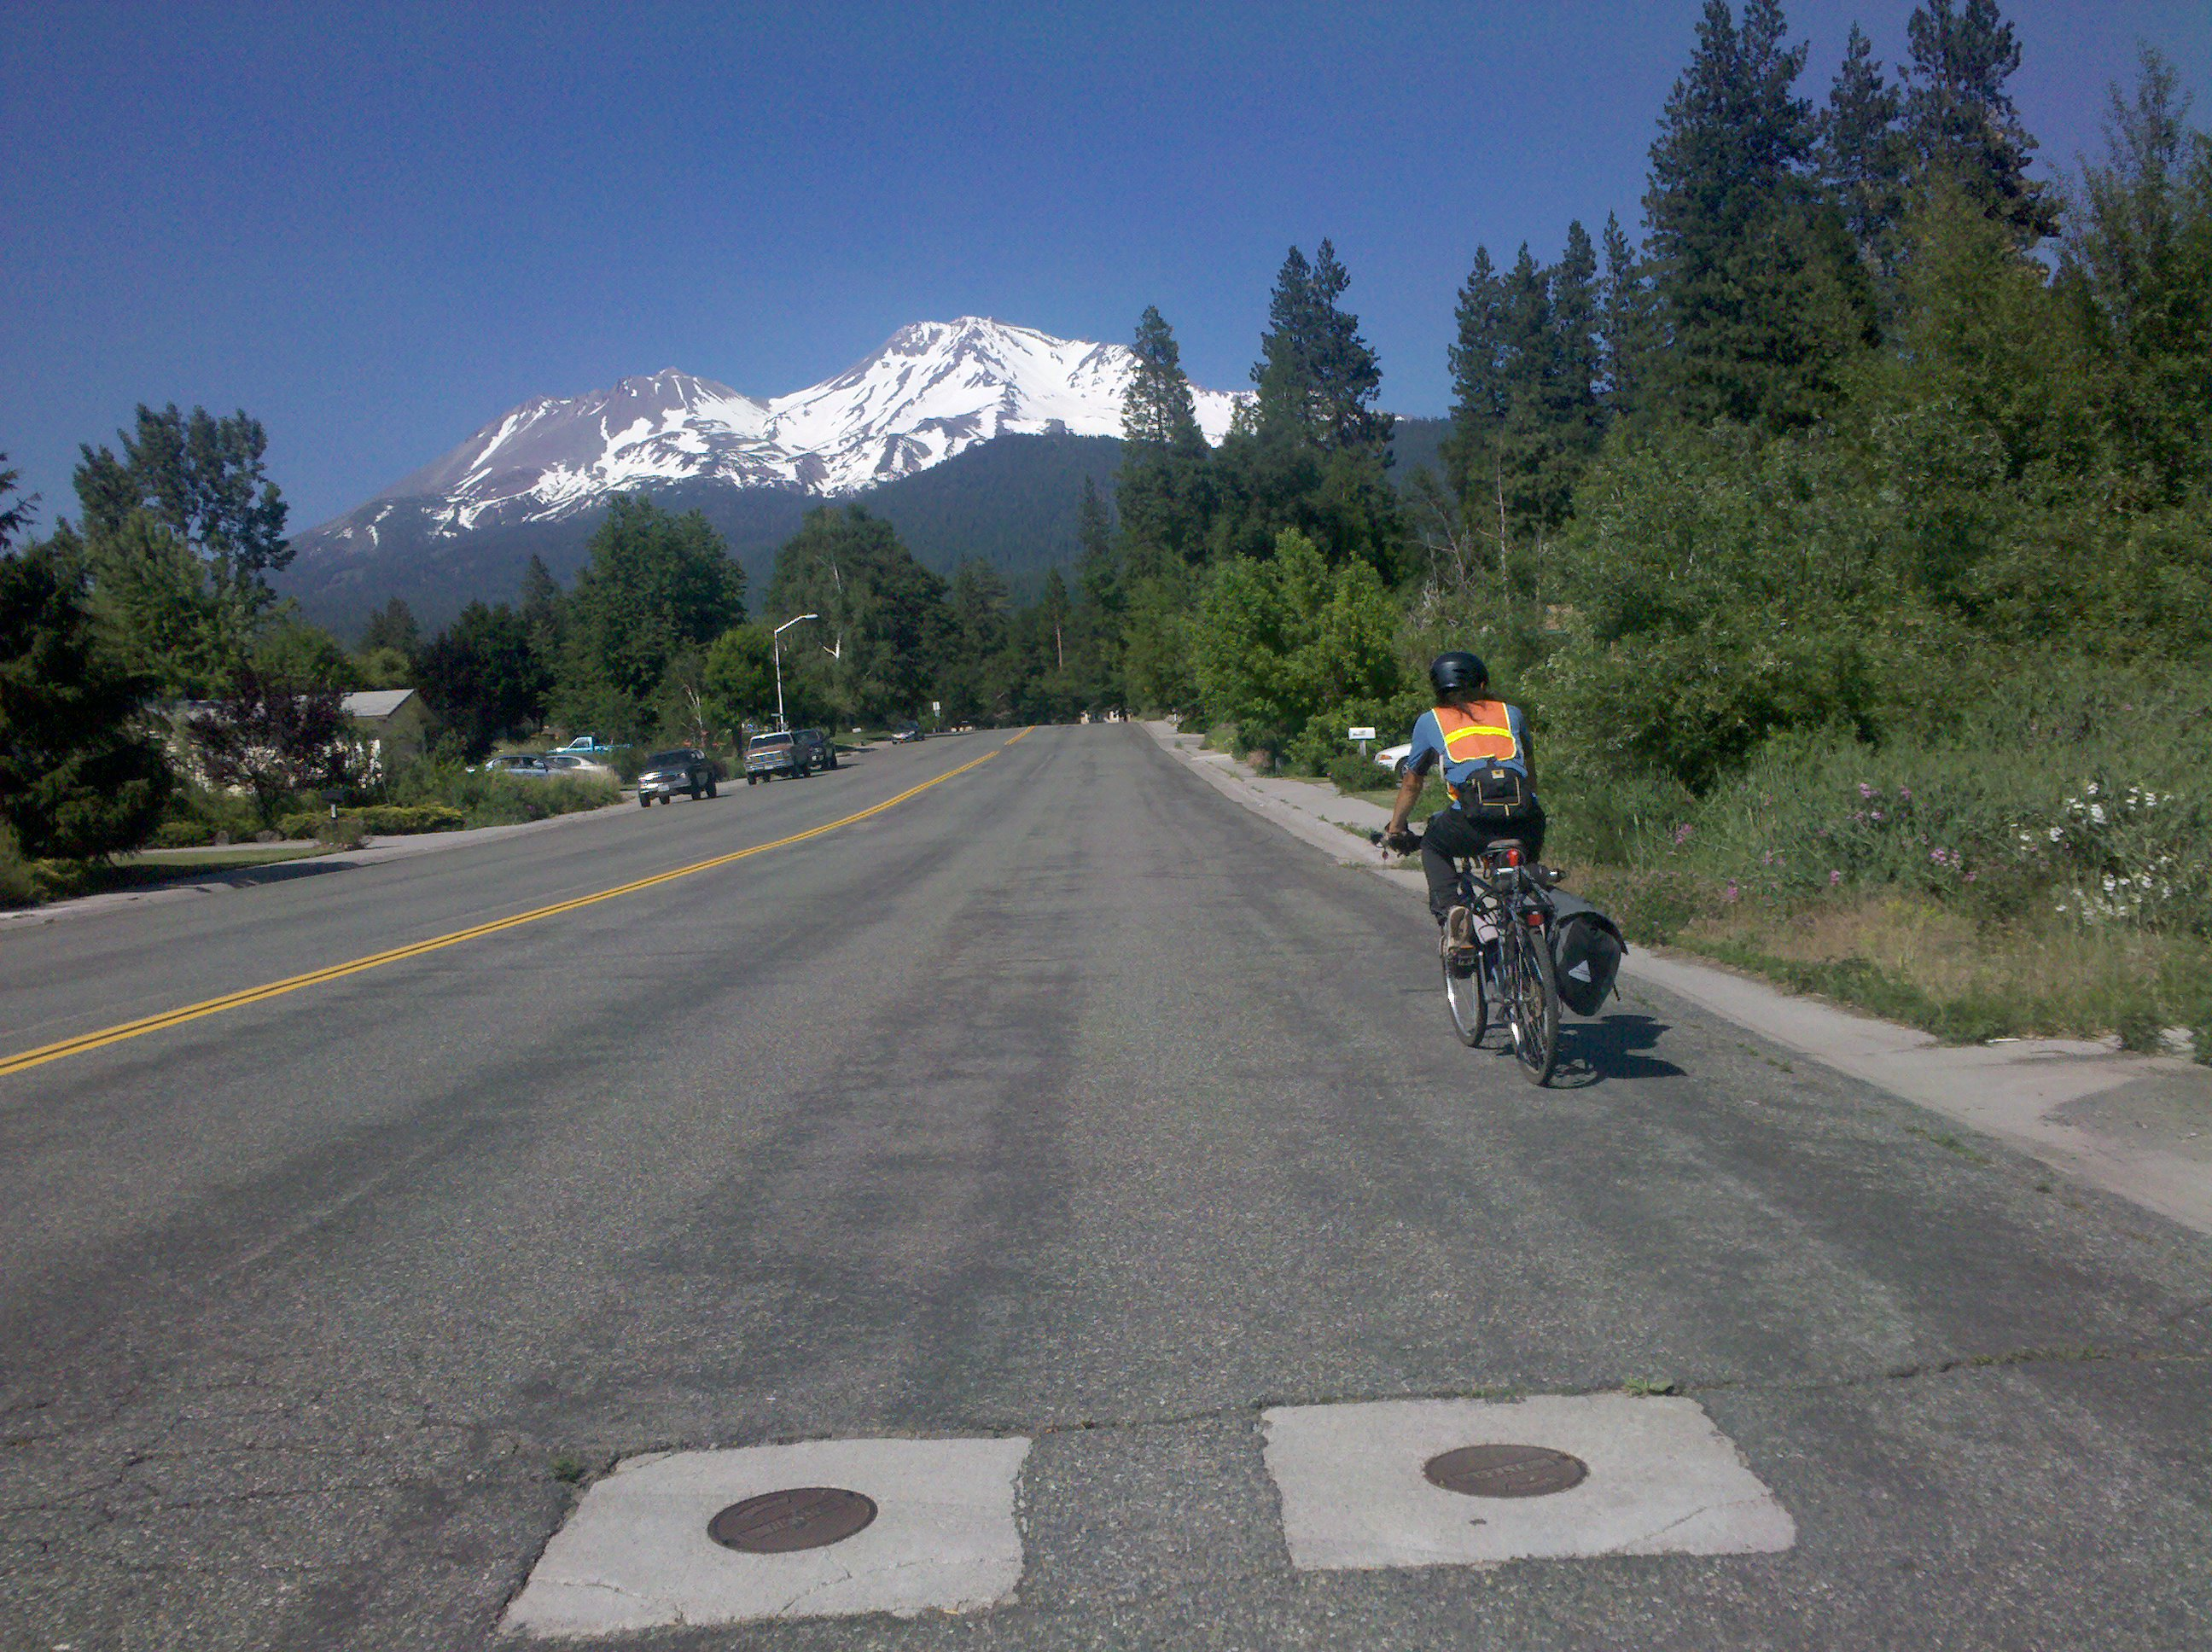 the road to Black Butte, passing Mount Shasta